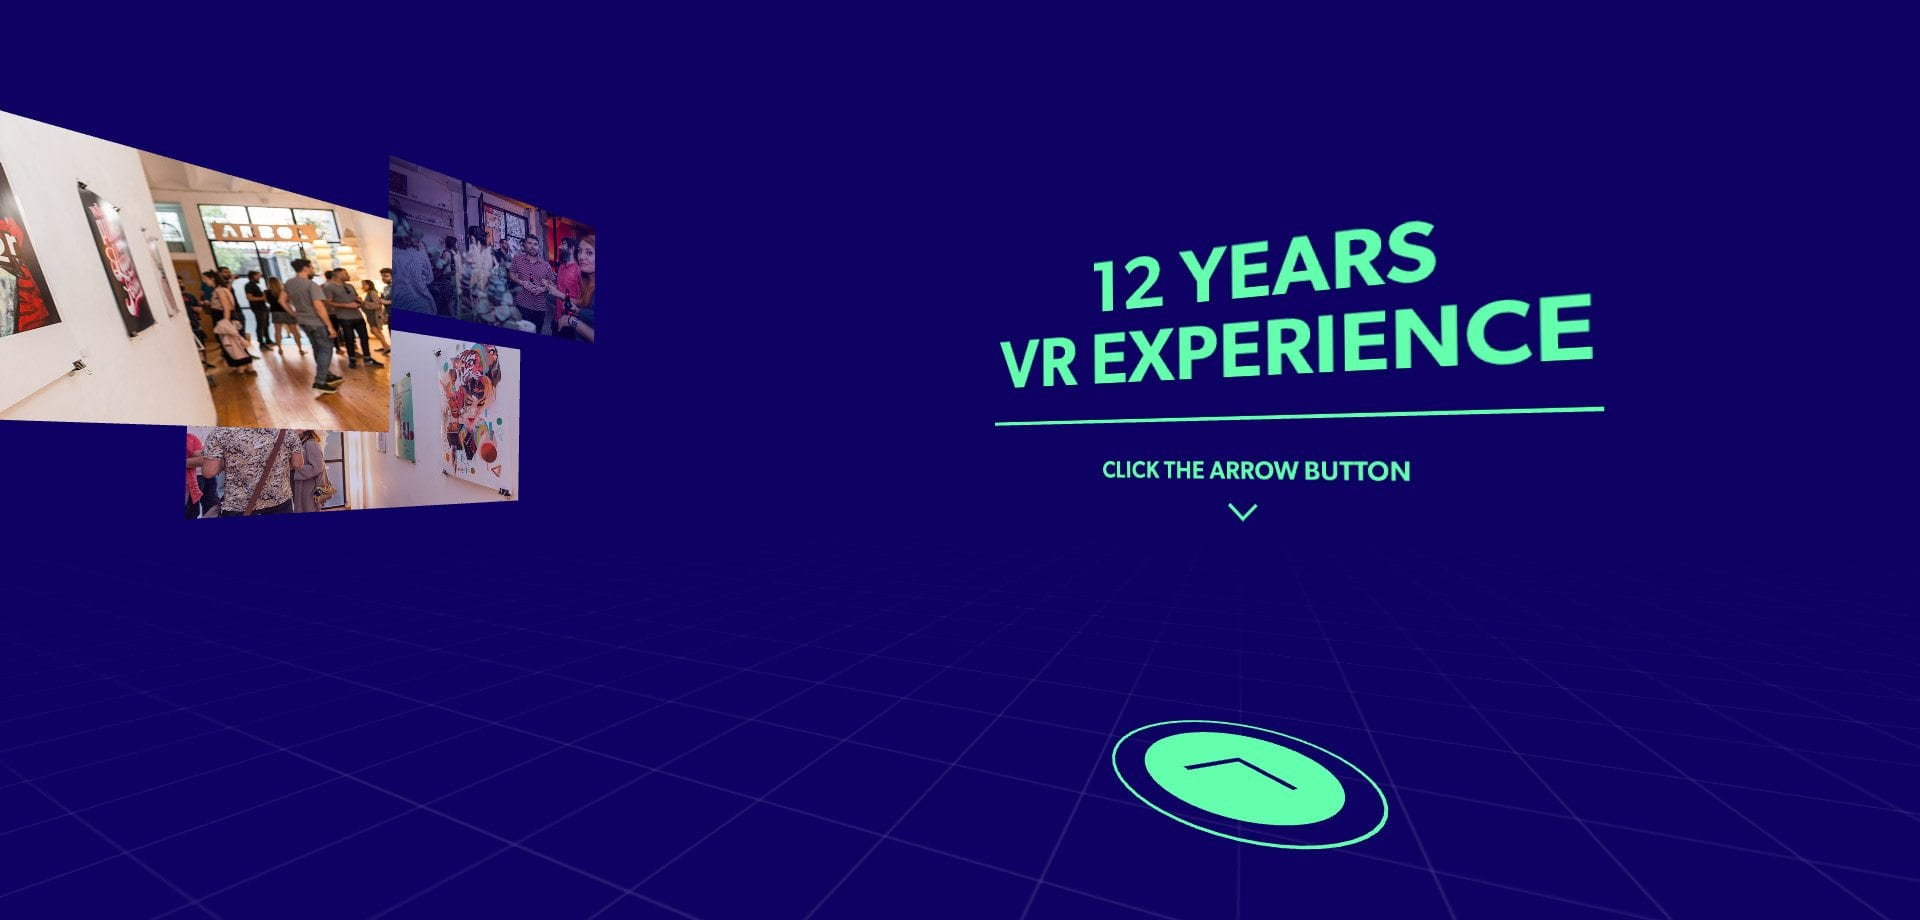 12 Years of Nectar VR Experience